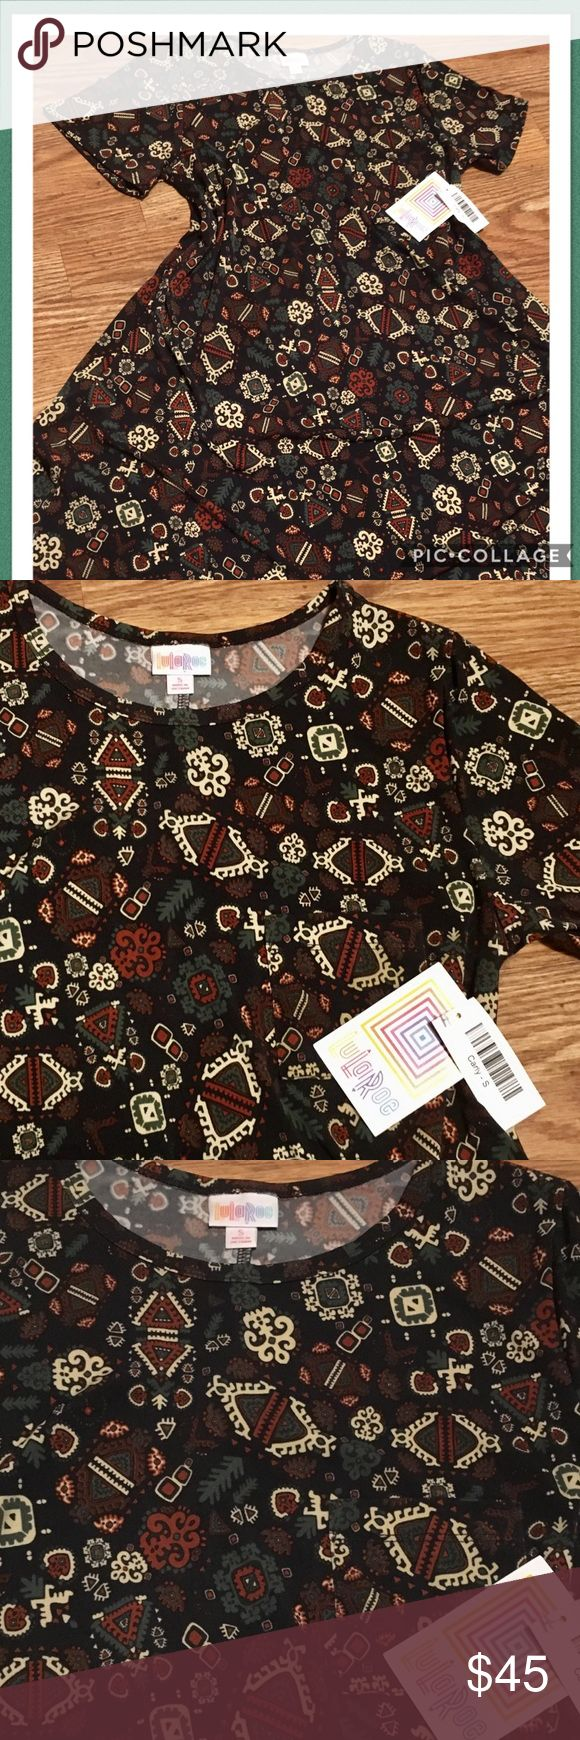 💚LulaRoe Carly Swing Dress ~ Size Small💚 🖤LulaRoe Carly Swing Dress ~ Size Small ~ This Carly is cute and comfy with a black base and pretty pattern of fab fall colors in cream, rusty red, and green ~ Features short sleeves, a crew neckline, asymmetrical hem, and signature patch pocket!🖤 *Cross posted to another site LuLaRoe Dresses Asymmetrical